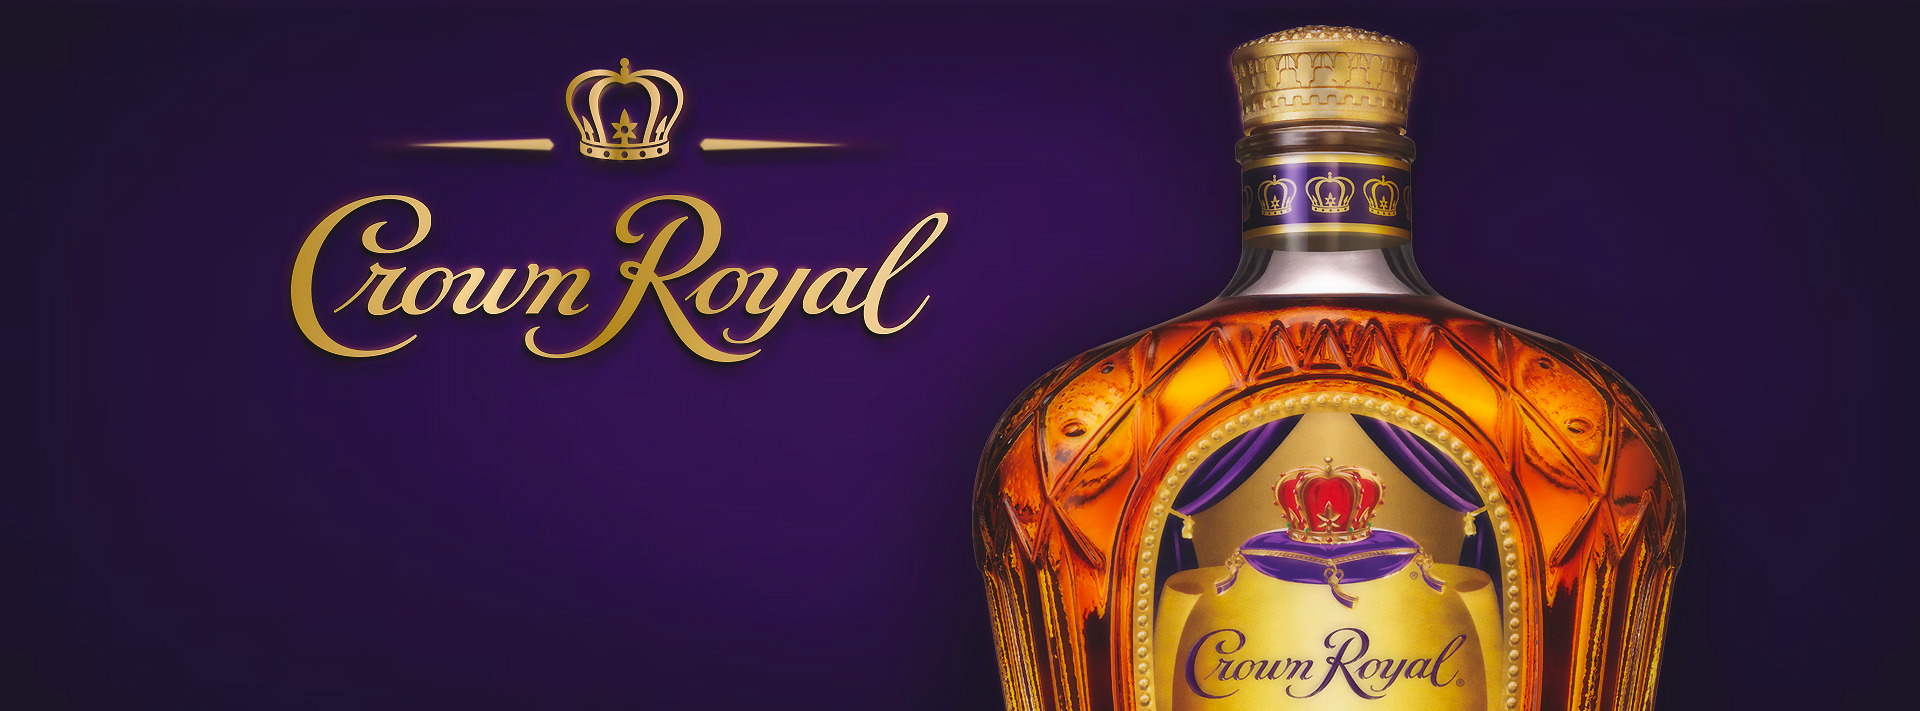 Crown royal freeuse Crown Royal Canadian Whisky Recipes | thebar.com freeuse